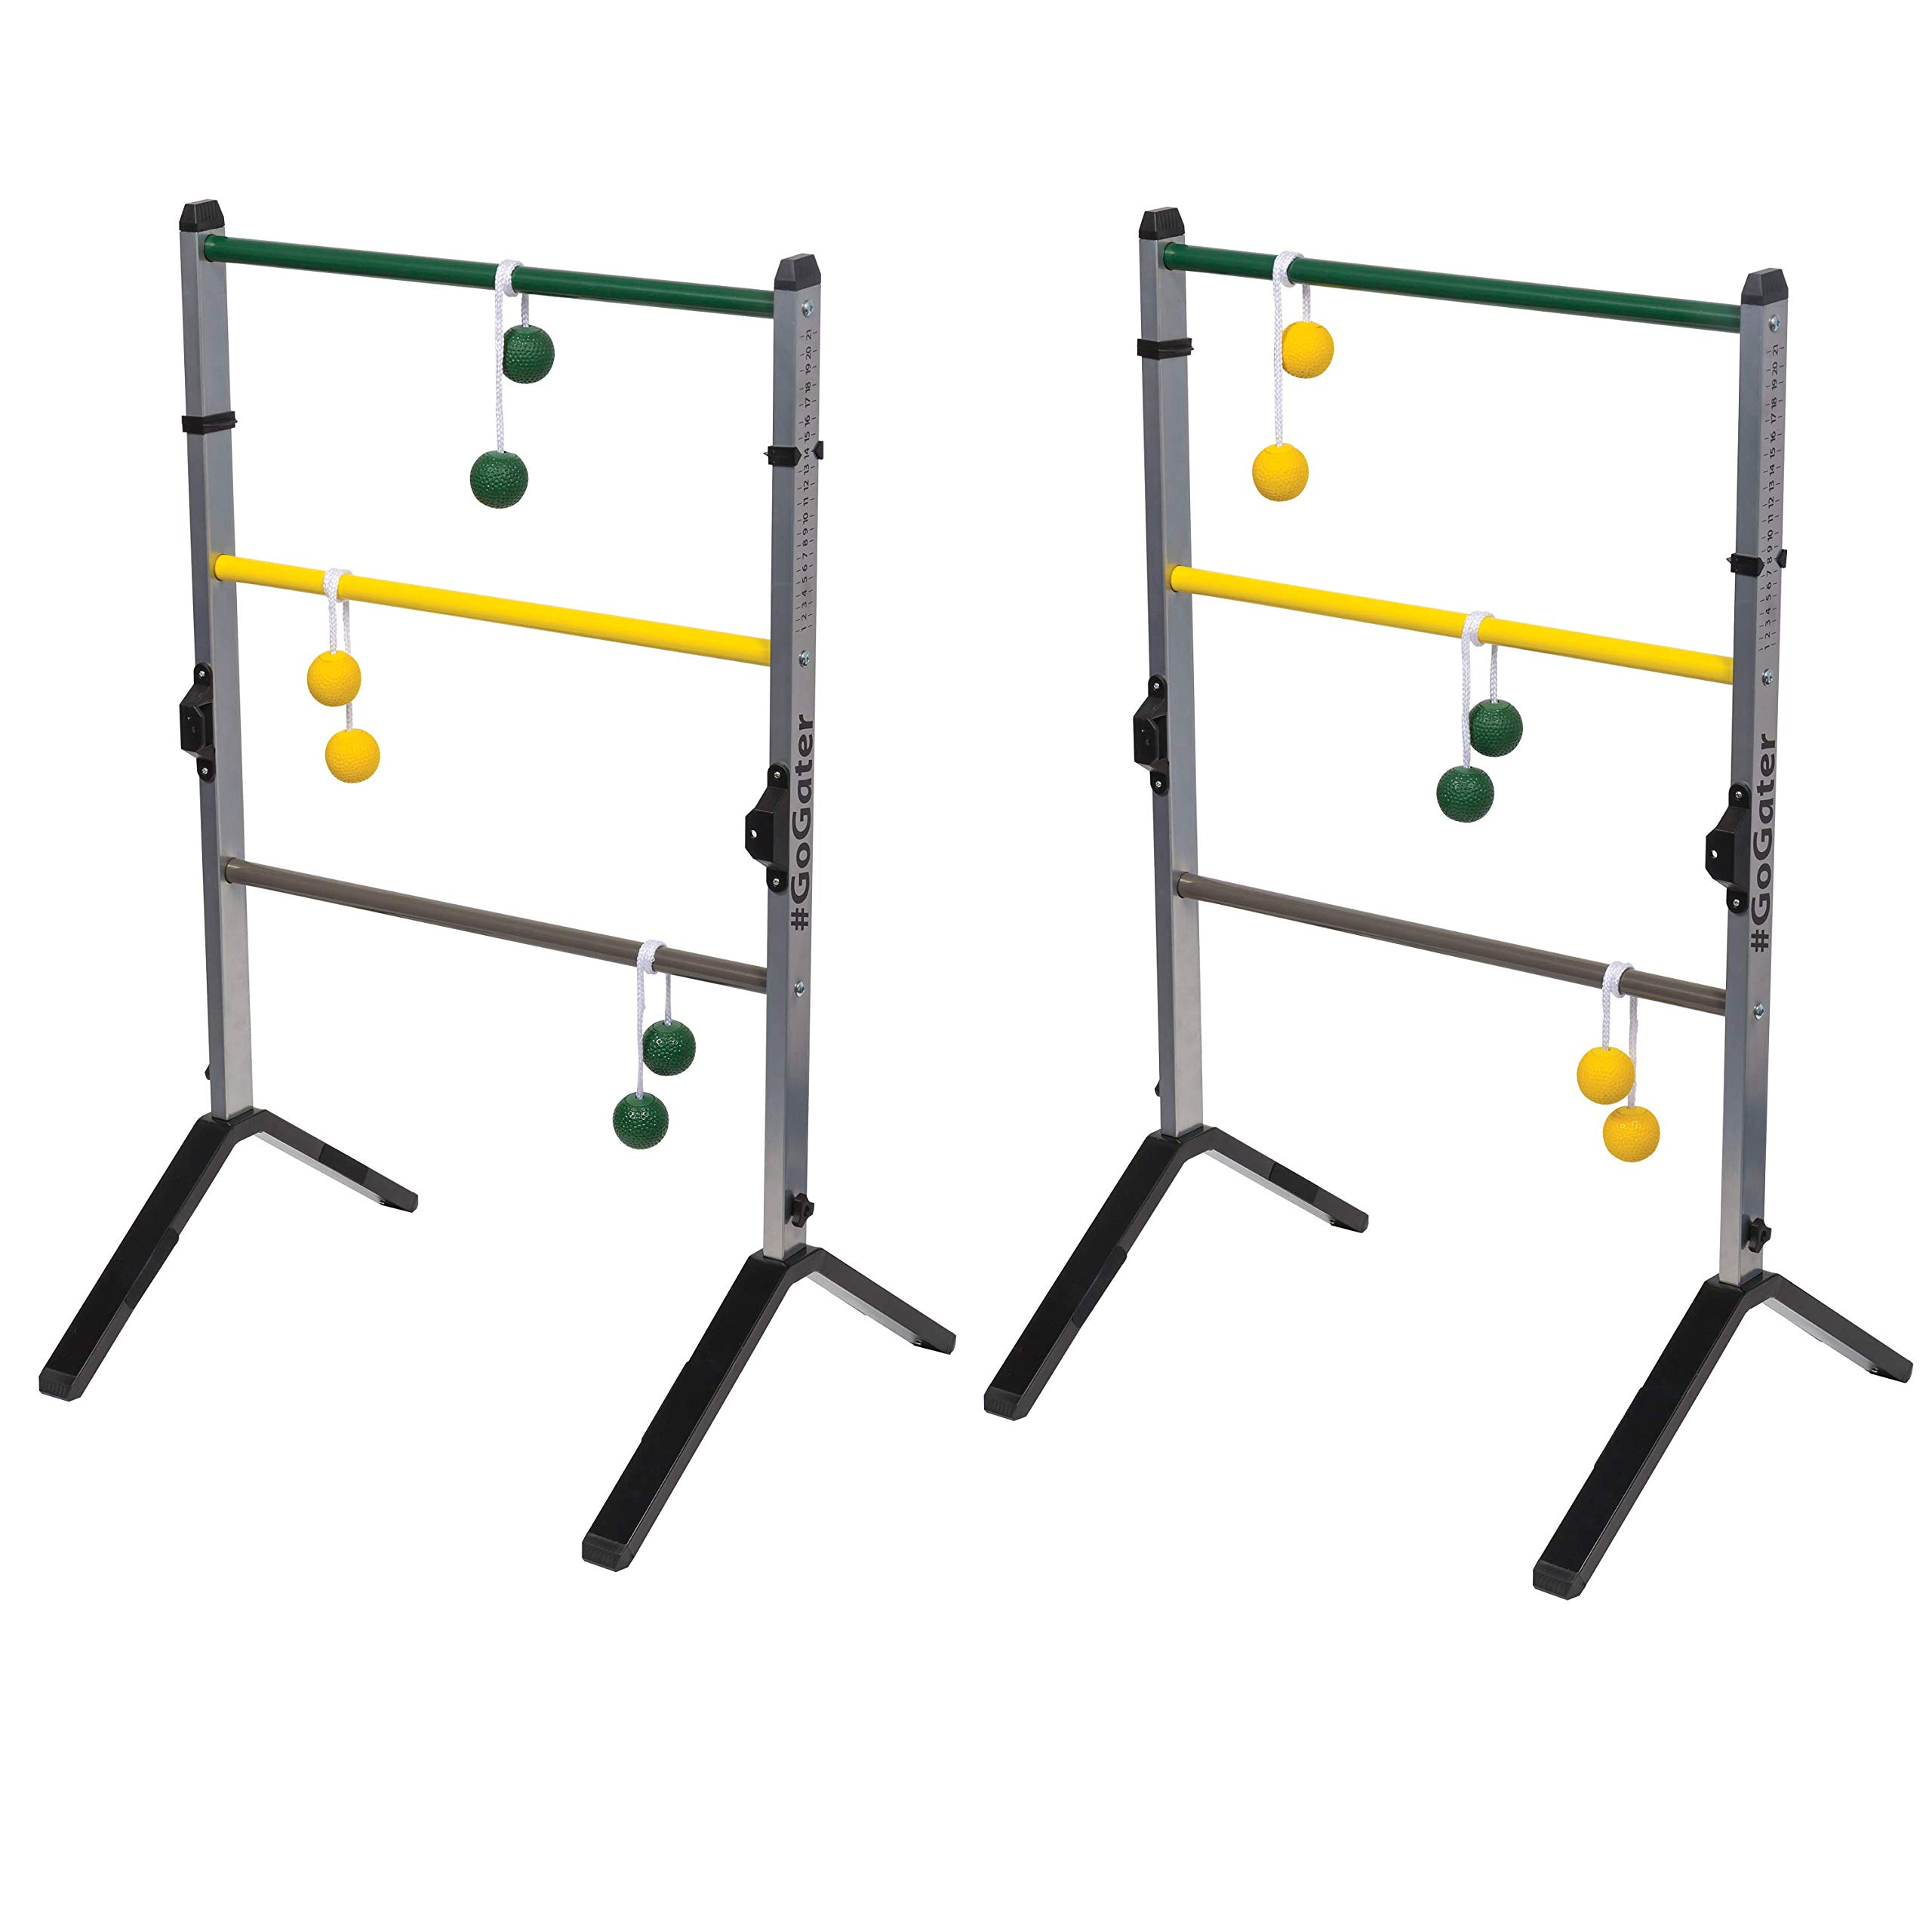 EastPoint Sports Go! Gater Premium Steel Ladderball Set - Features Sturdy Steel Material, Built-in Scoring System, and Complete with All Accessories by EastPoint Sports